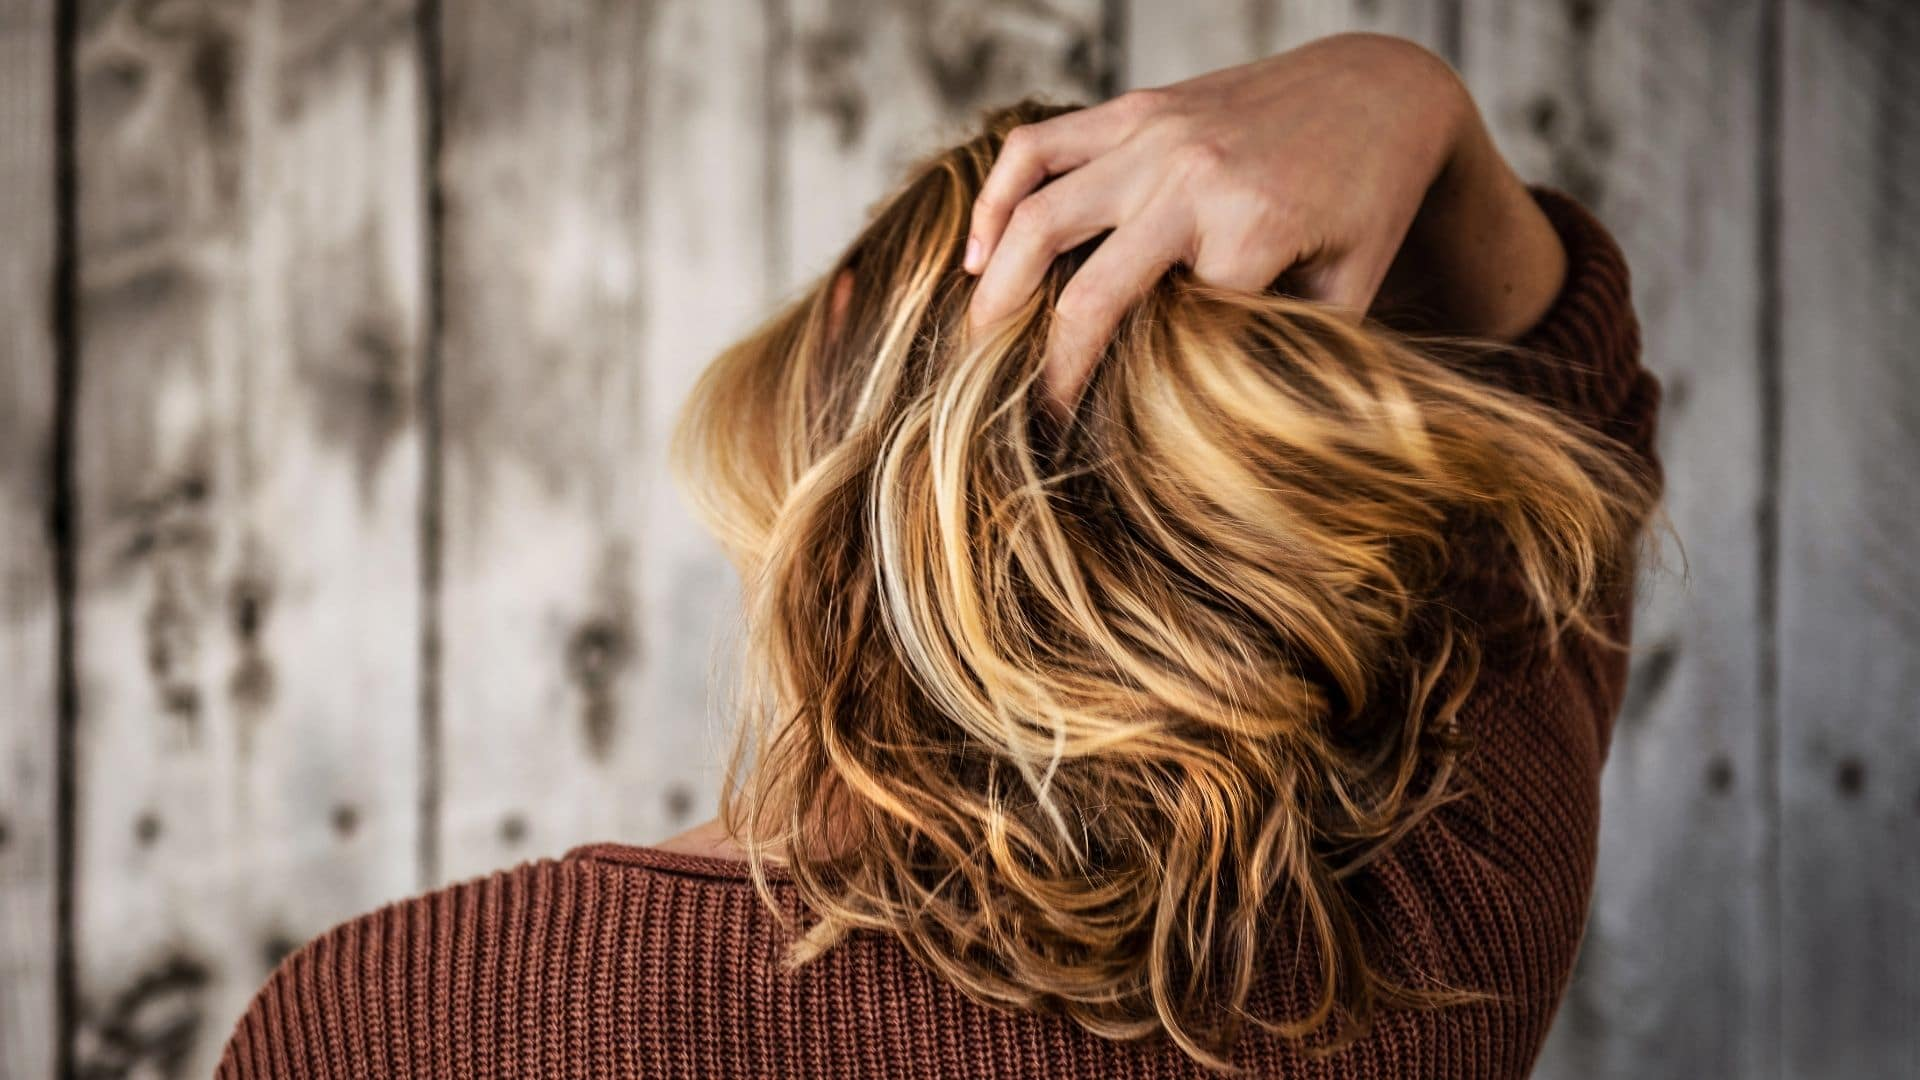 woman running fingers through hair wondering which illegal drugs that cause hair loss